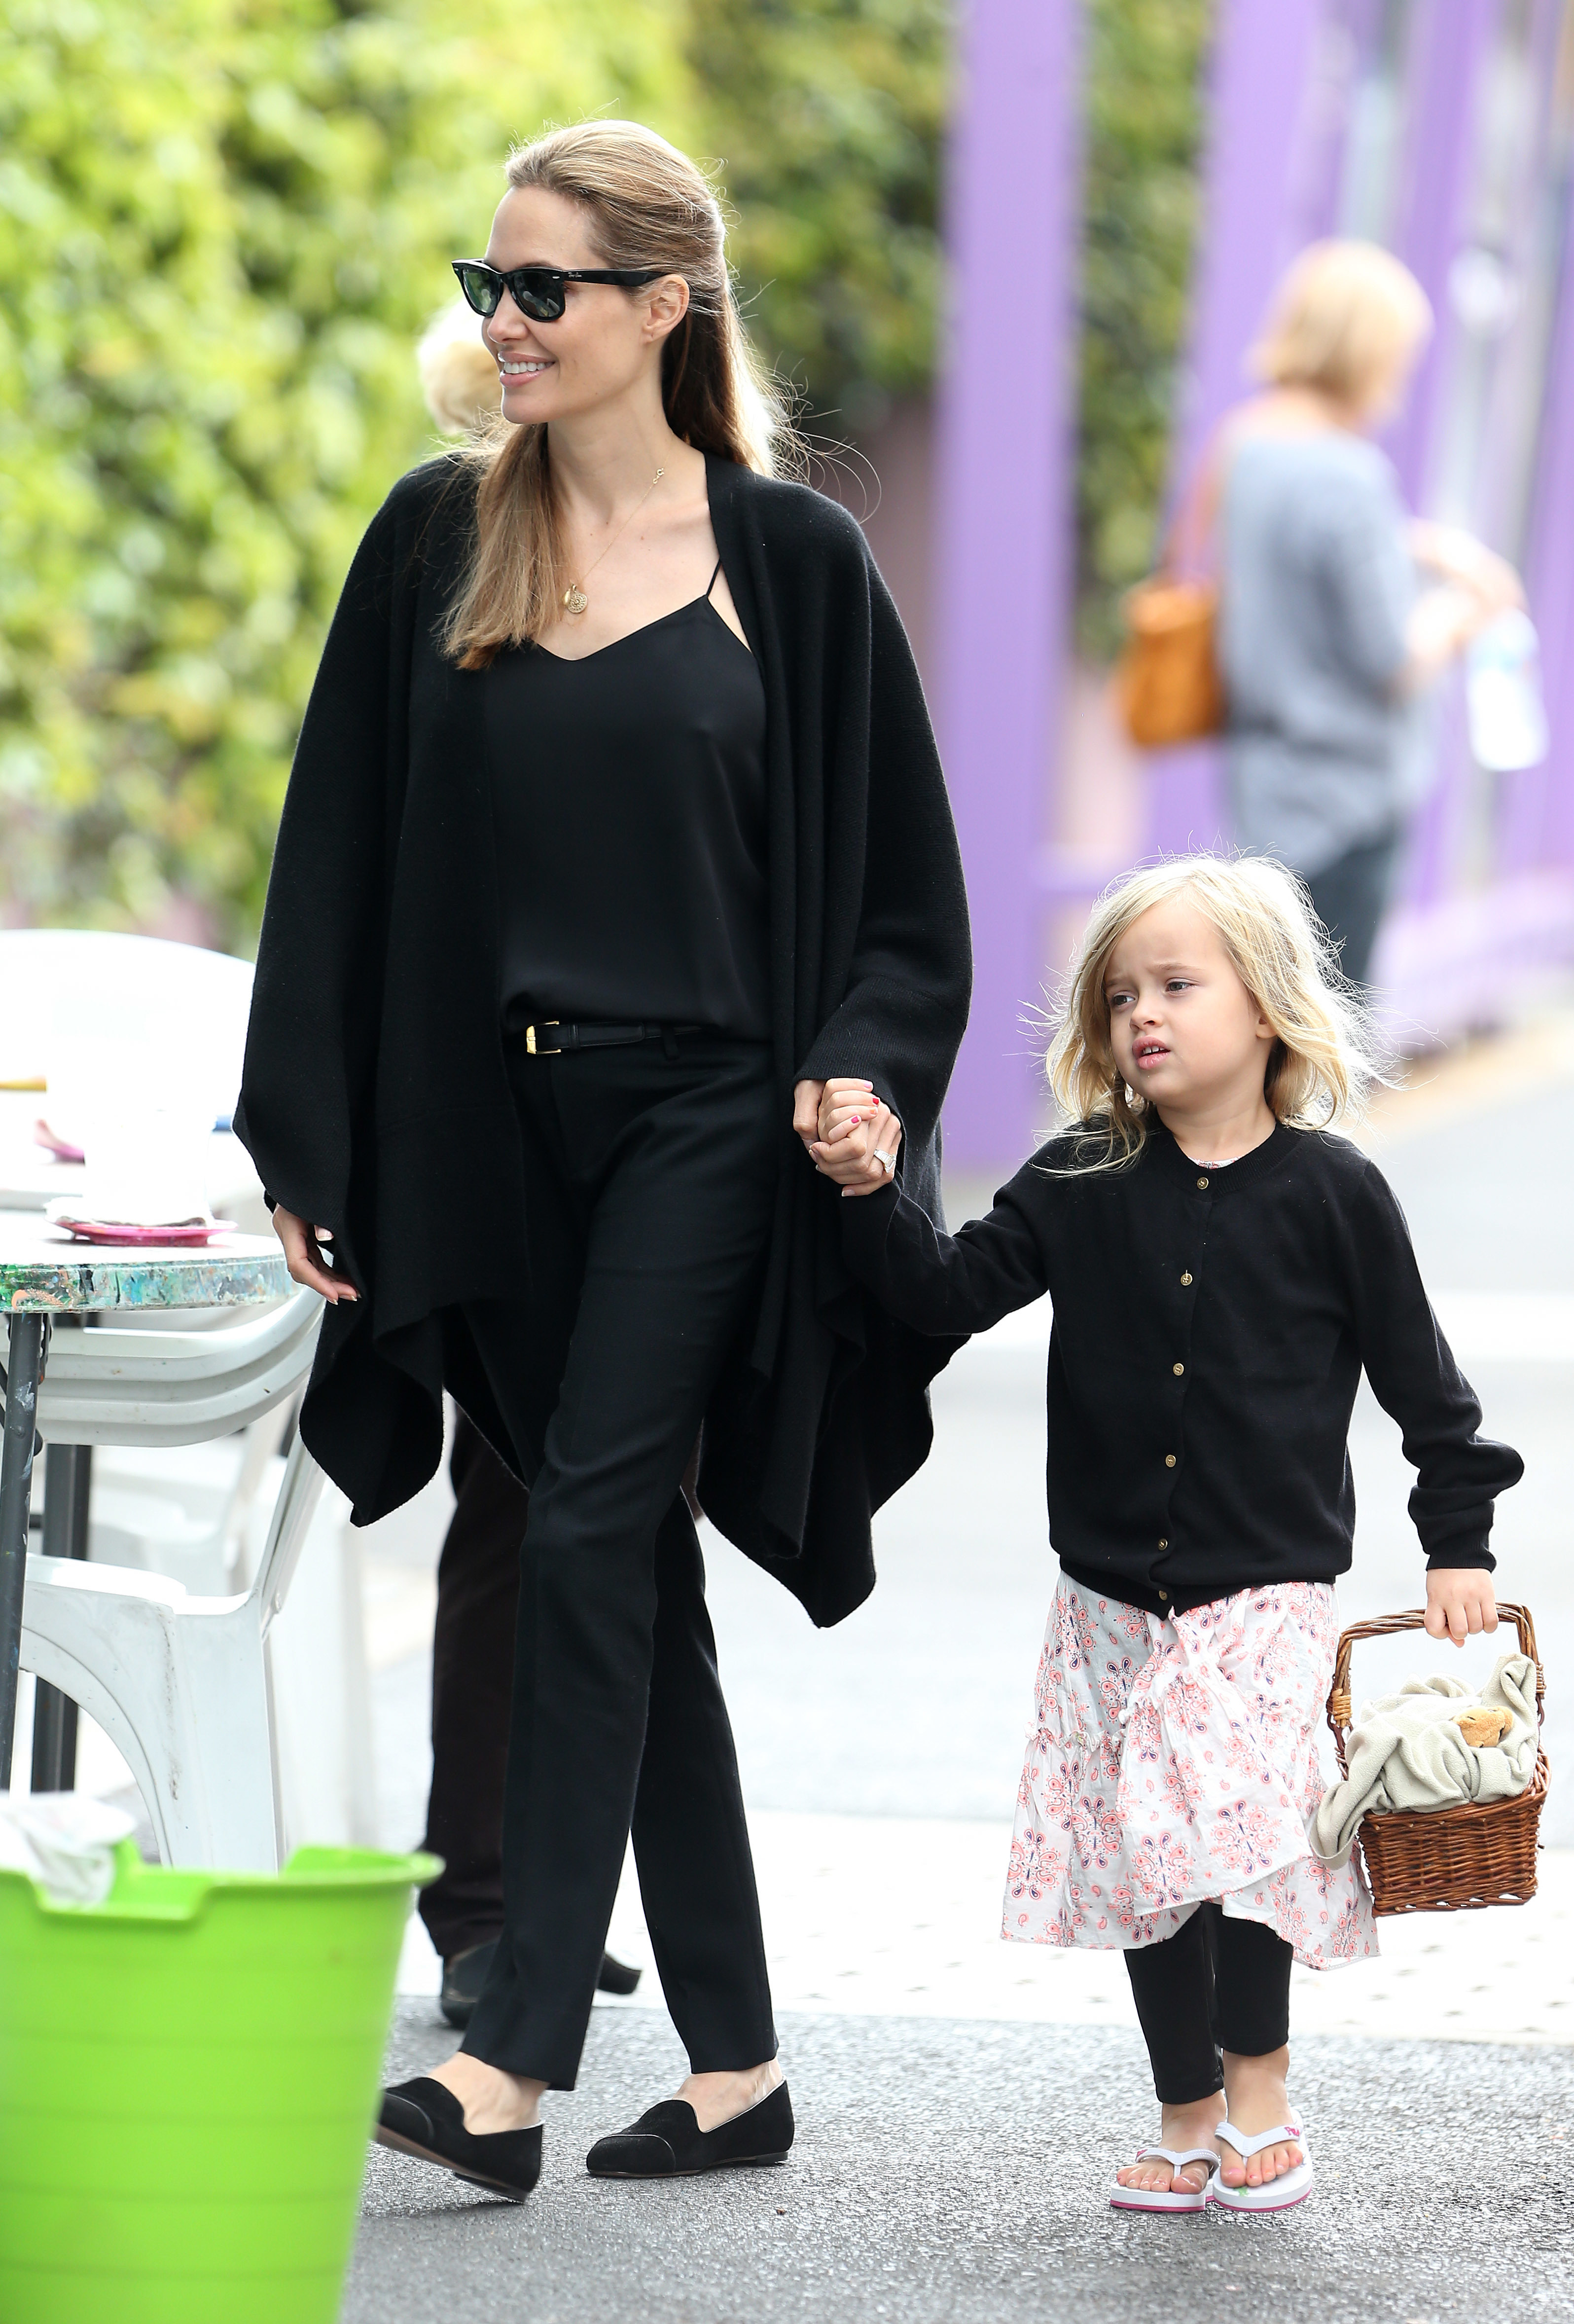 Angelina Jolie, twins, stock up on gag gifts in Vegas